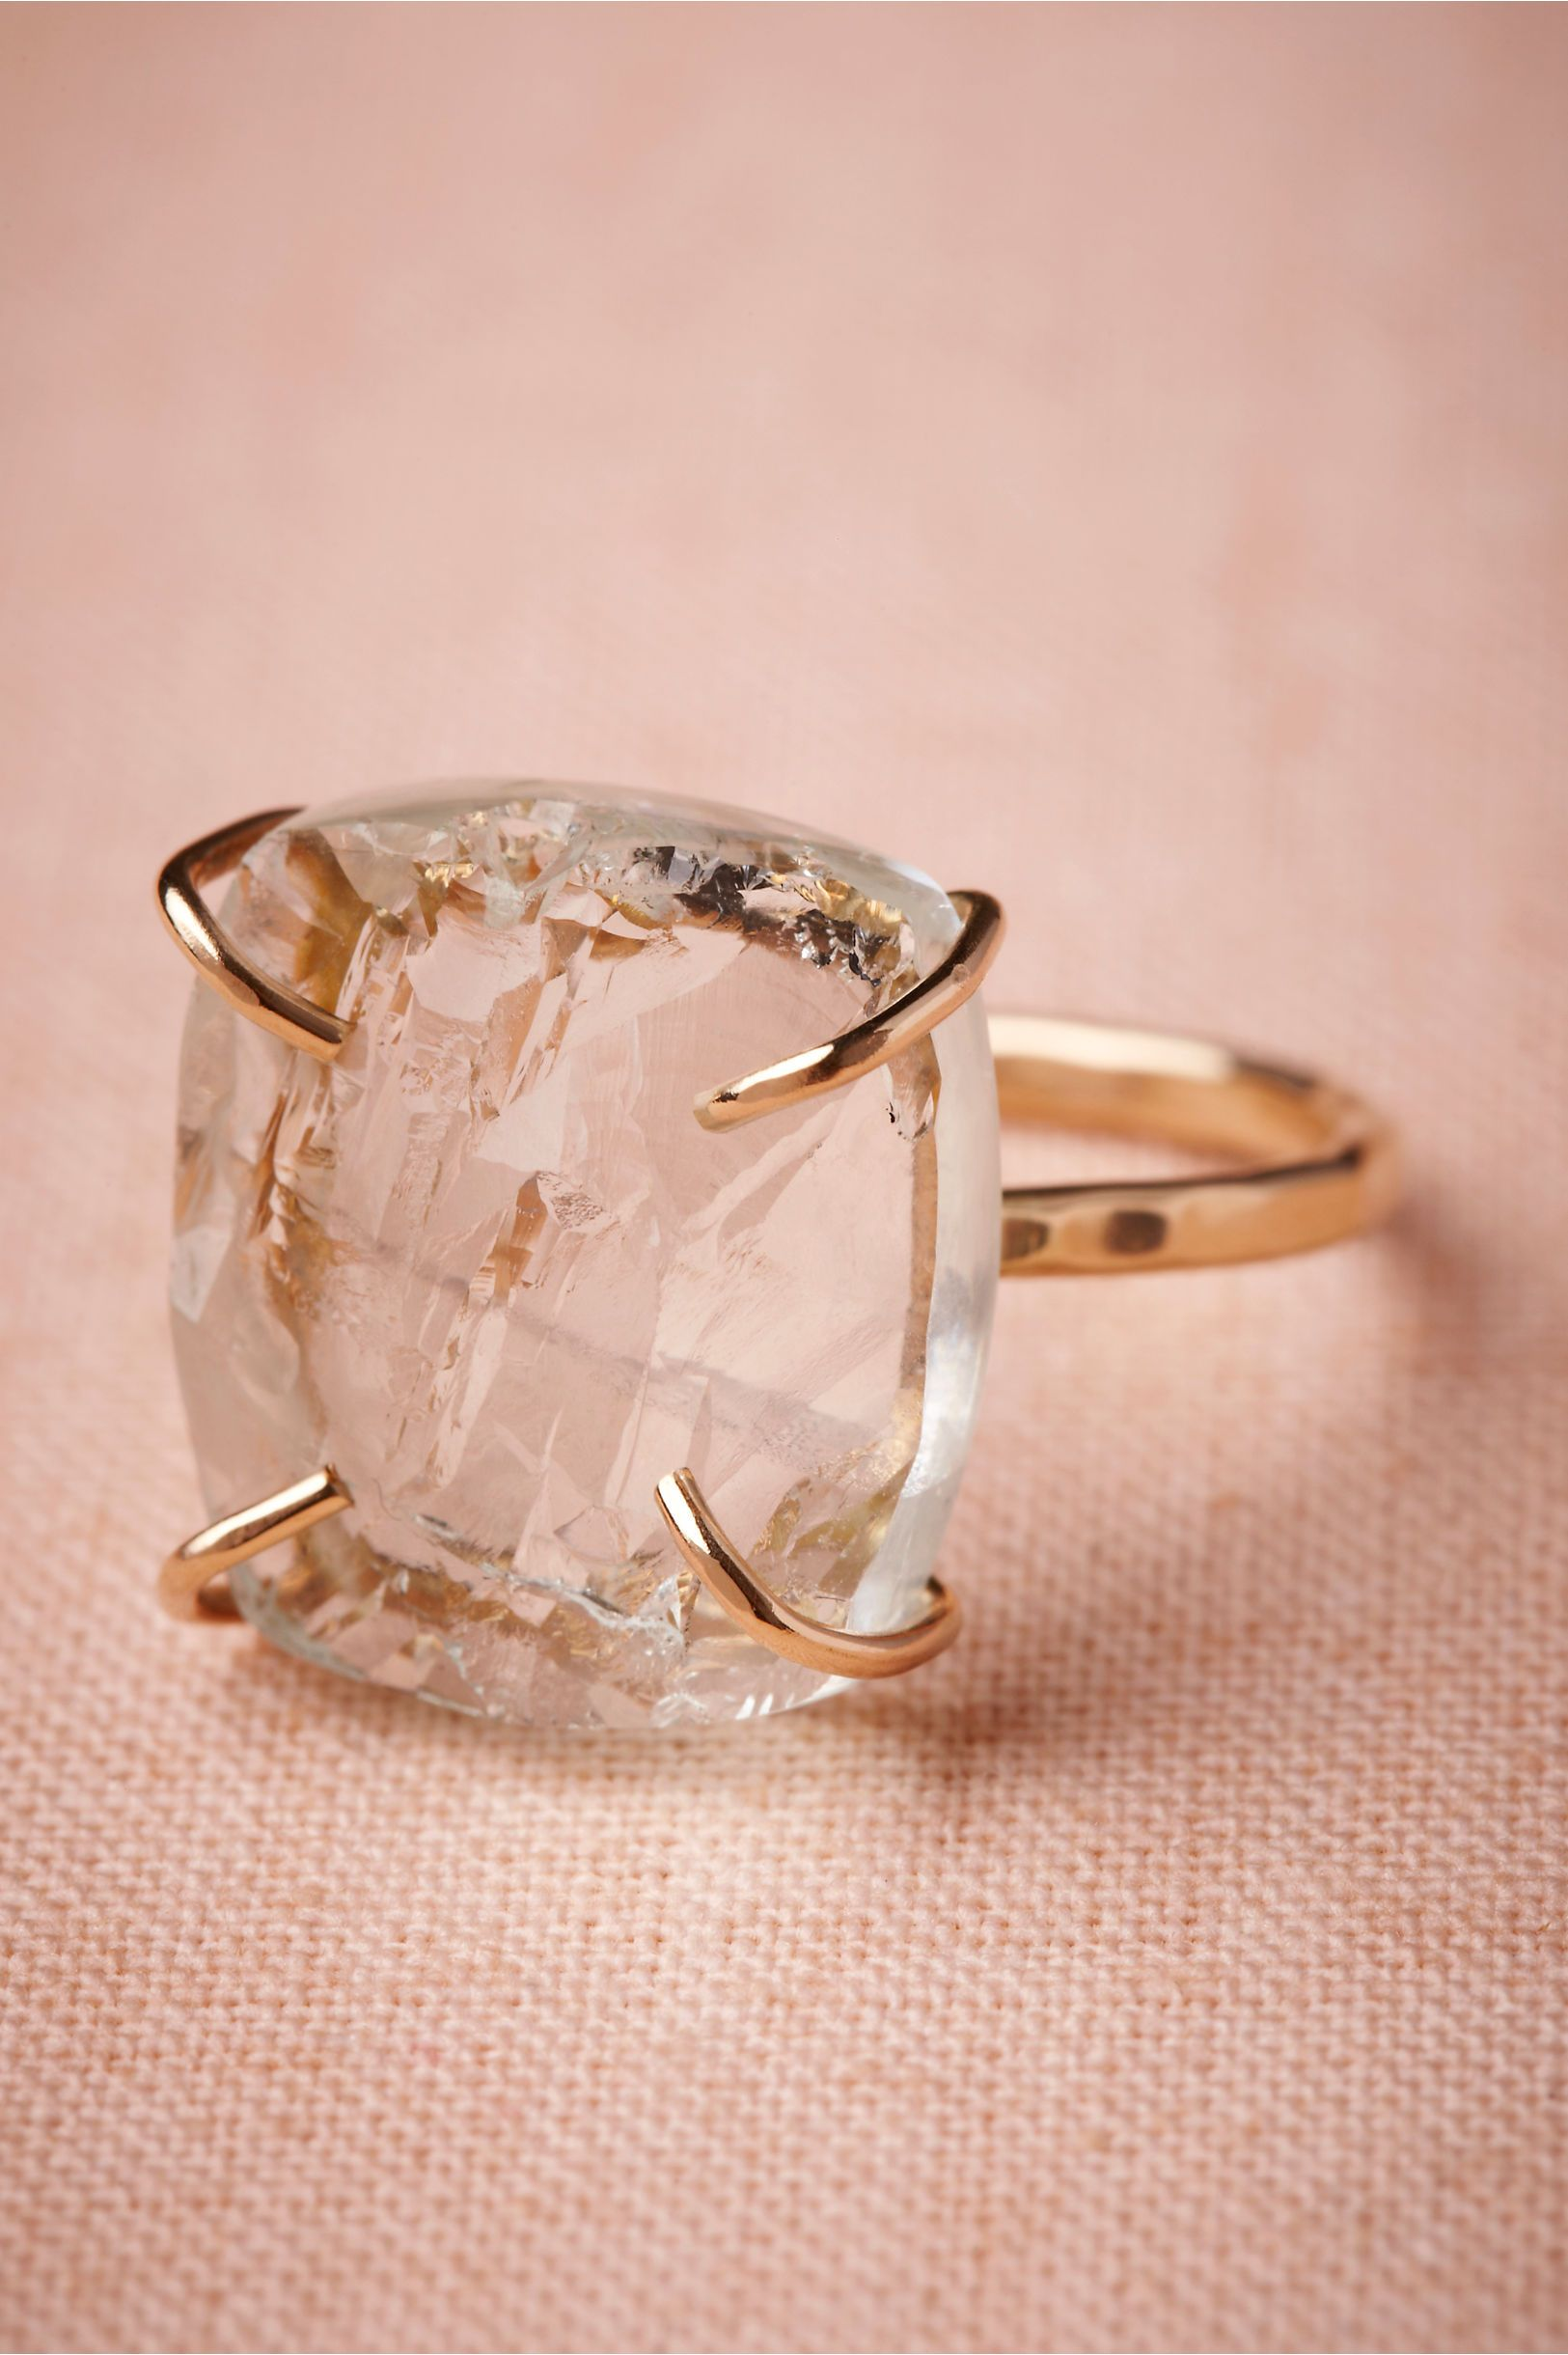 jewelry rings pin inspiration slice diamond lane wedding style